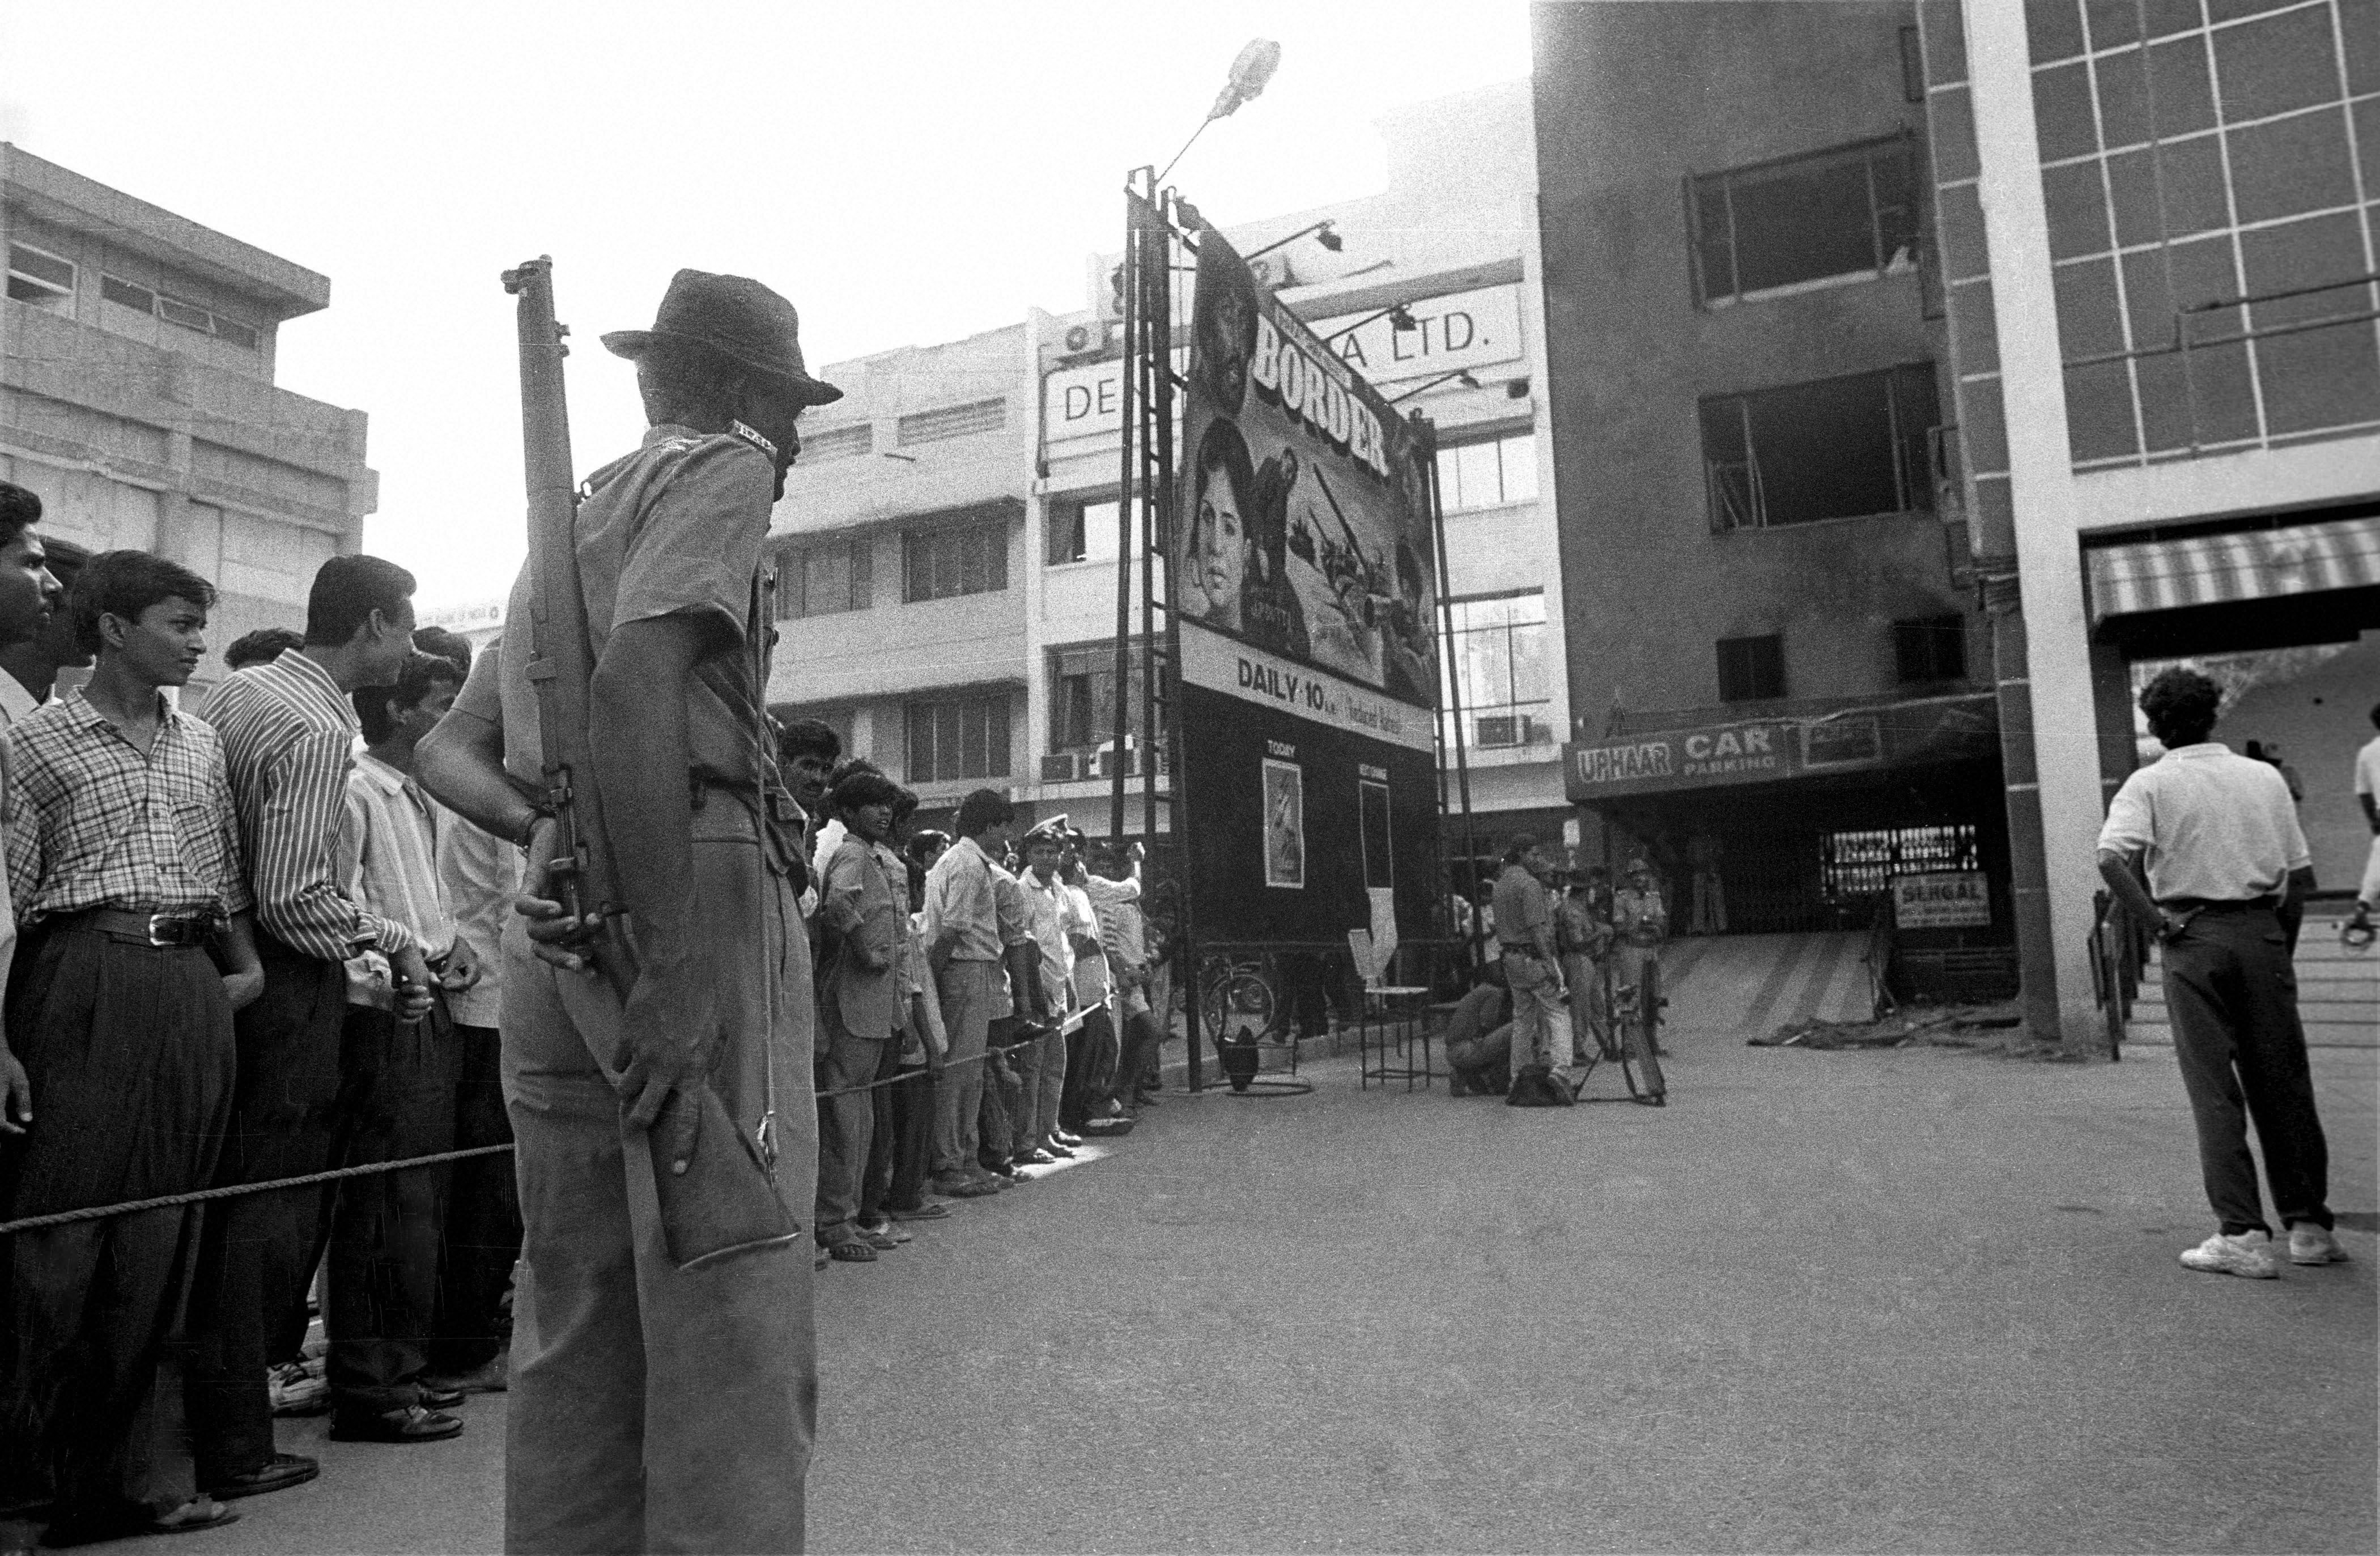 Anatomy of a Tragedy: Remembering the Victims of the Uphaar Cinema Fire